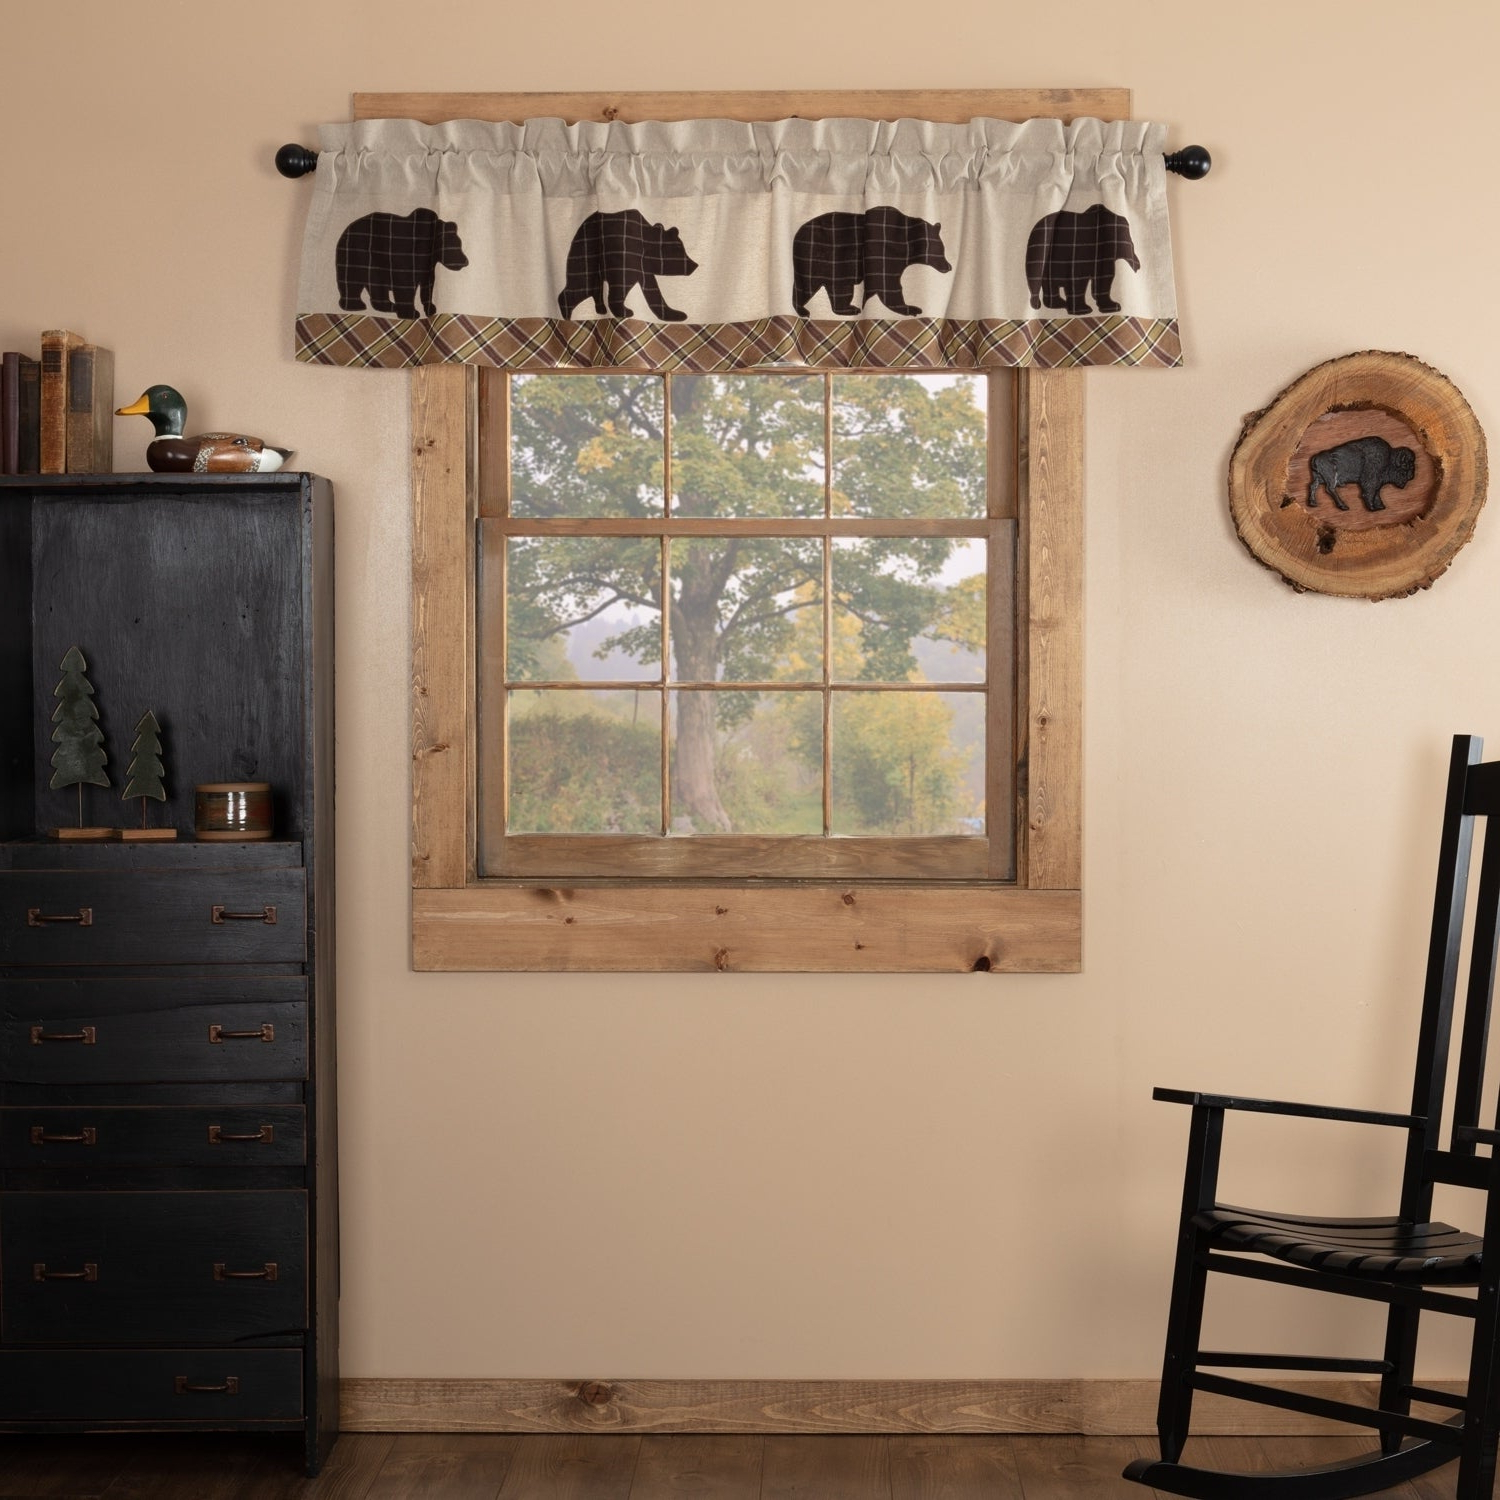 Best And Newest Rustic Kitchen Curtains With Tan Rustic Kitchen Curtains Vhc Wyatt Bear Valance Rod Pocket Cotton Nature Print Appliqued Chambray (View 2 of 20)